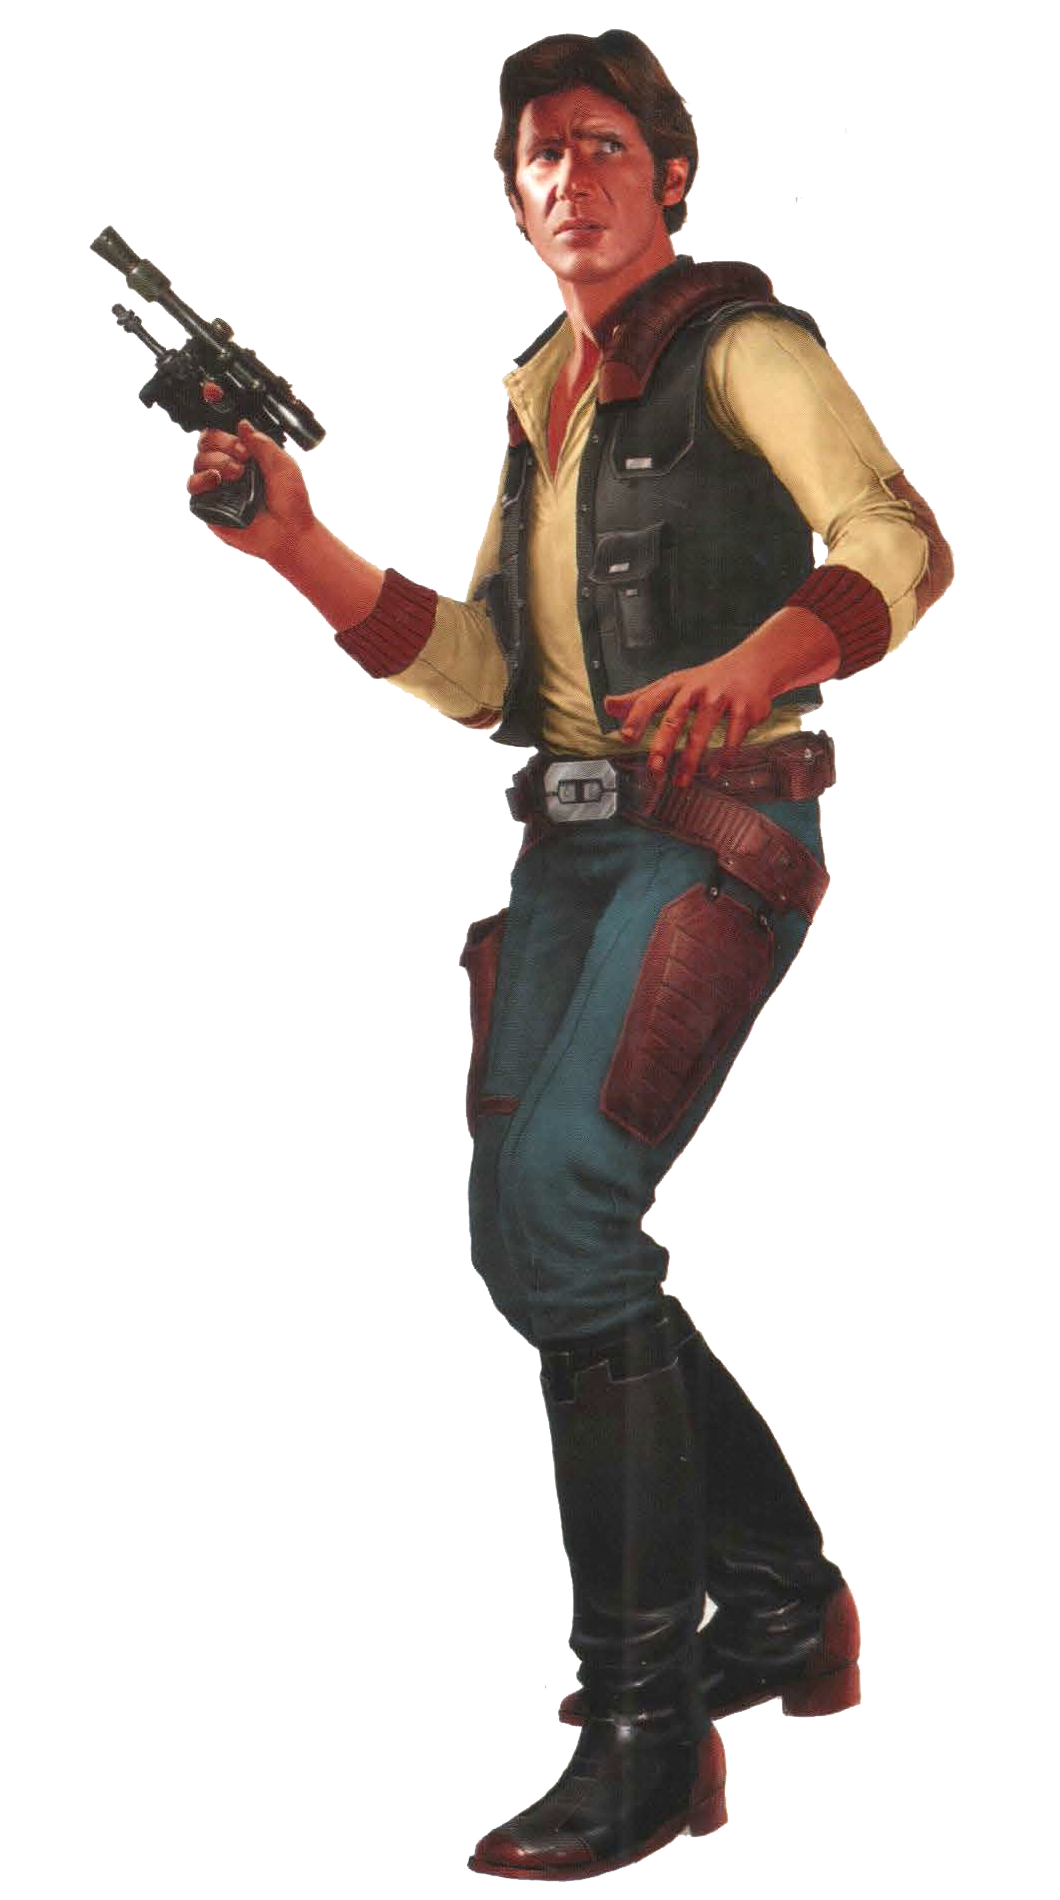 Han Solo EotECR.png - Han Solo PNG